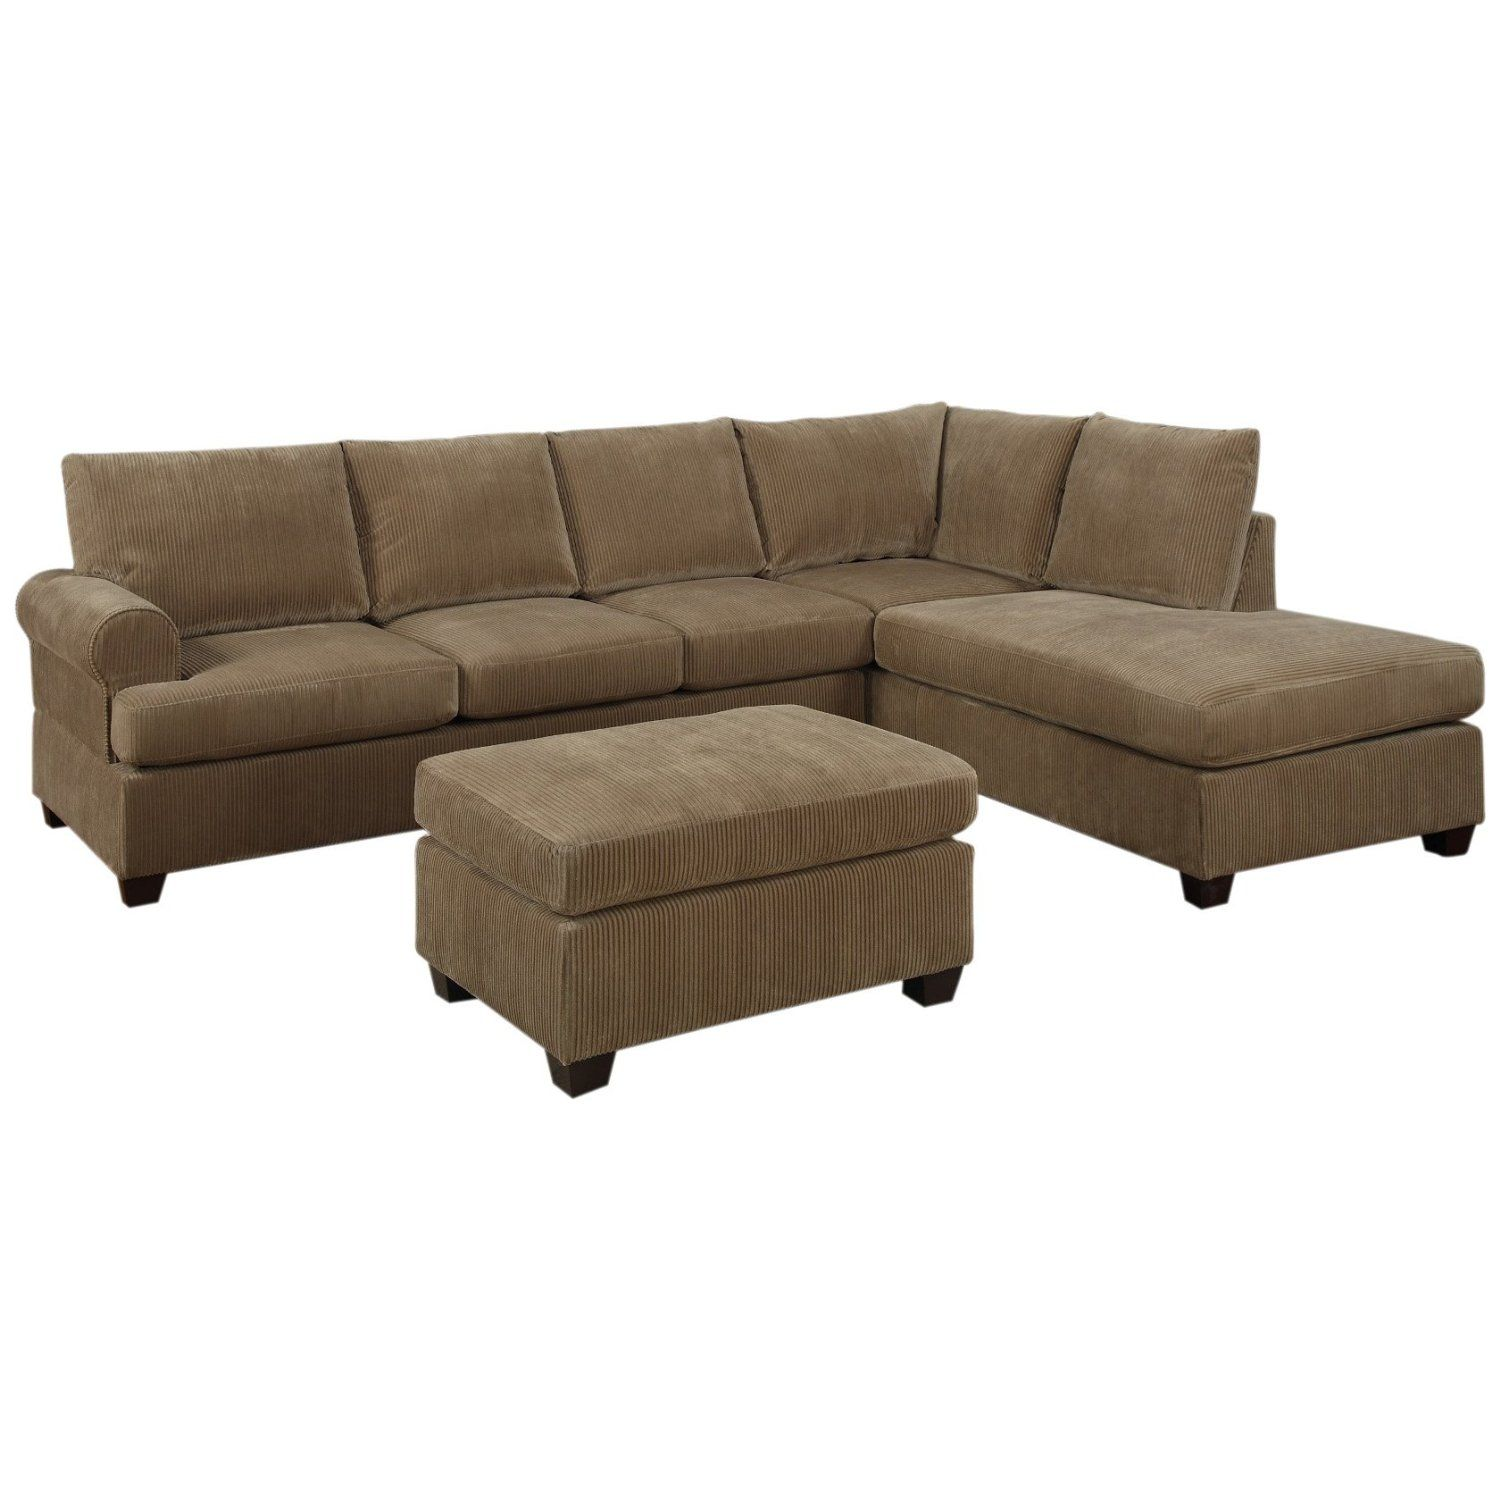 Like This One Too Includes Ottoman Chaise Is Reversible